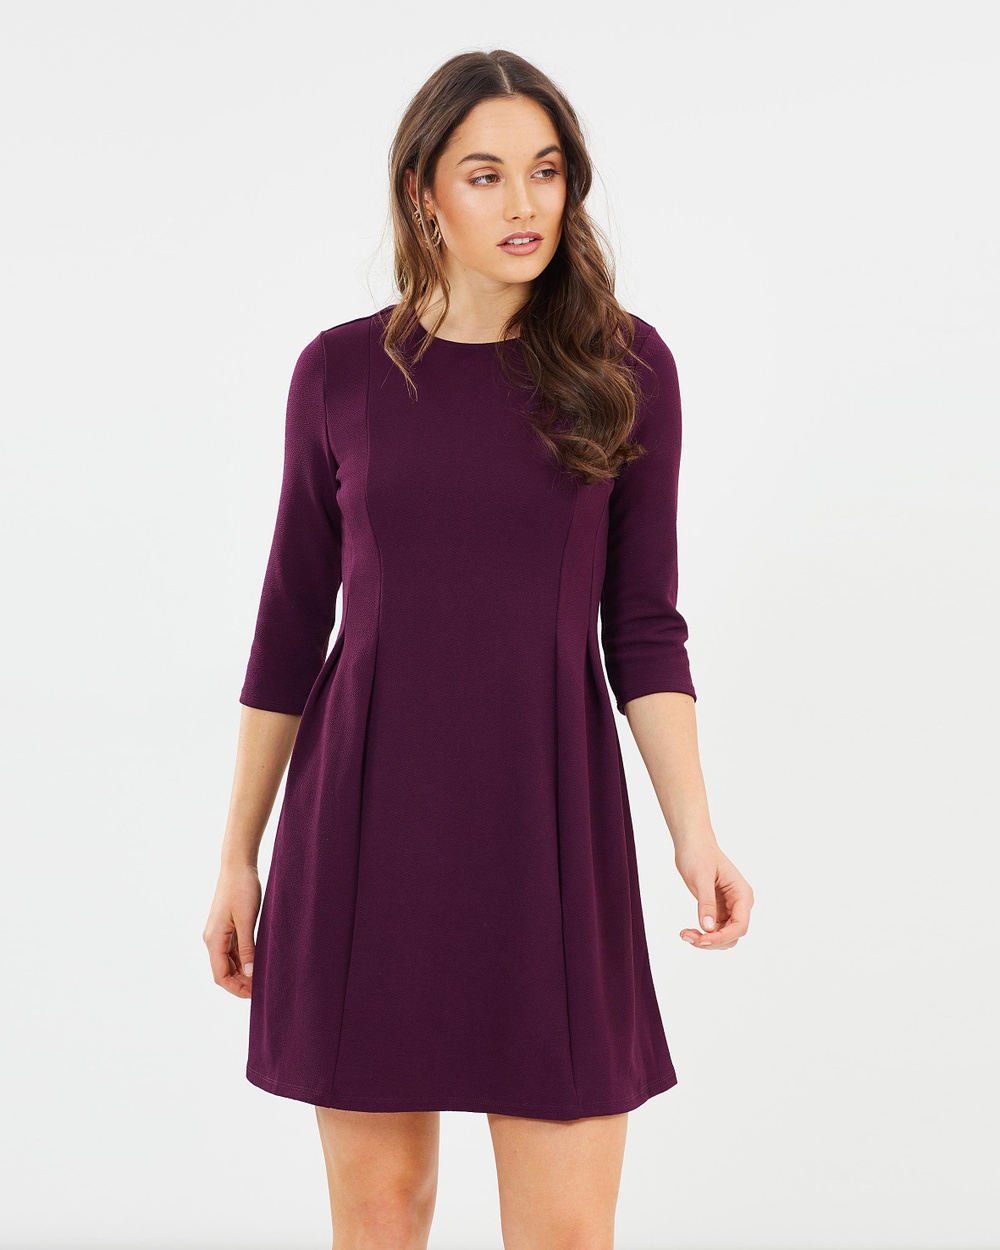 Dorothy Perkins 3 4 Sleeve Fit and Flare Dress Dresses Berry 3-4 Sleeve Fit-and-Flare Dress